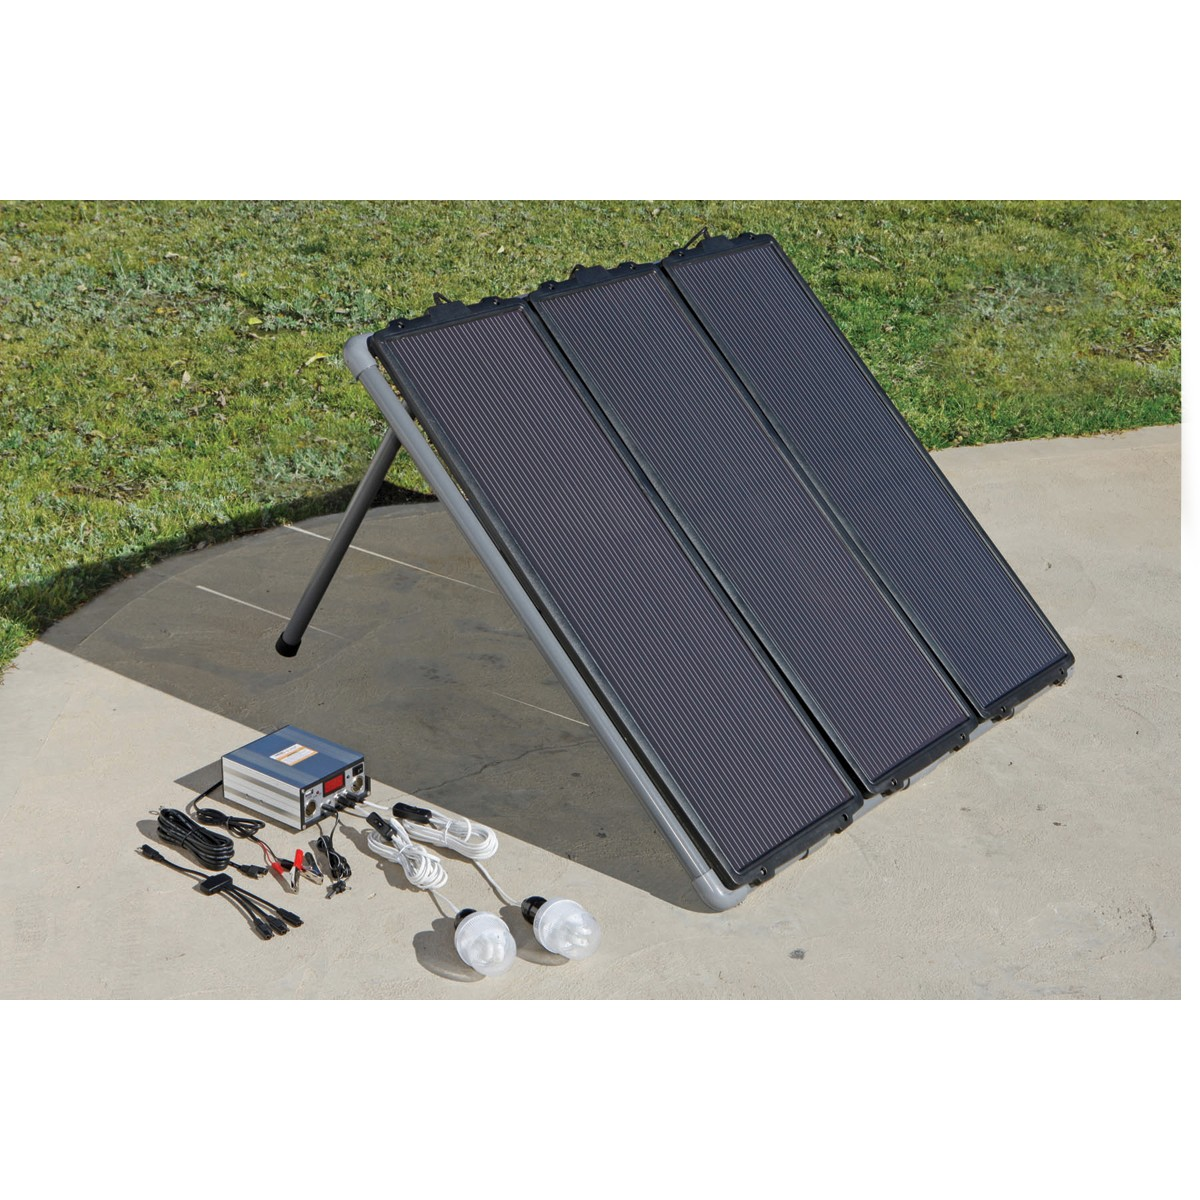 Picture of Assembling My Harbor Freight 45 Watt Solar Panel Kit - No Tools Needed!